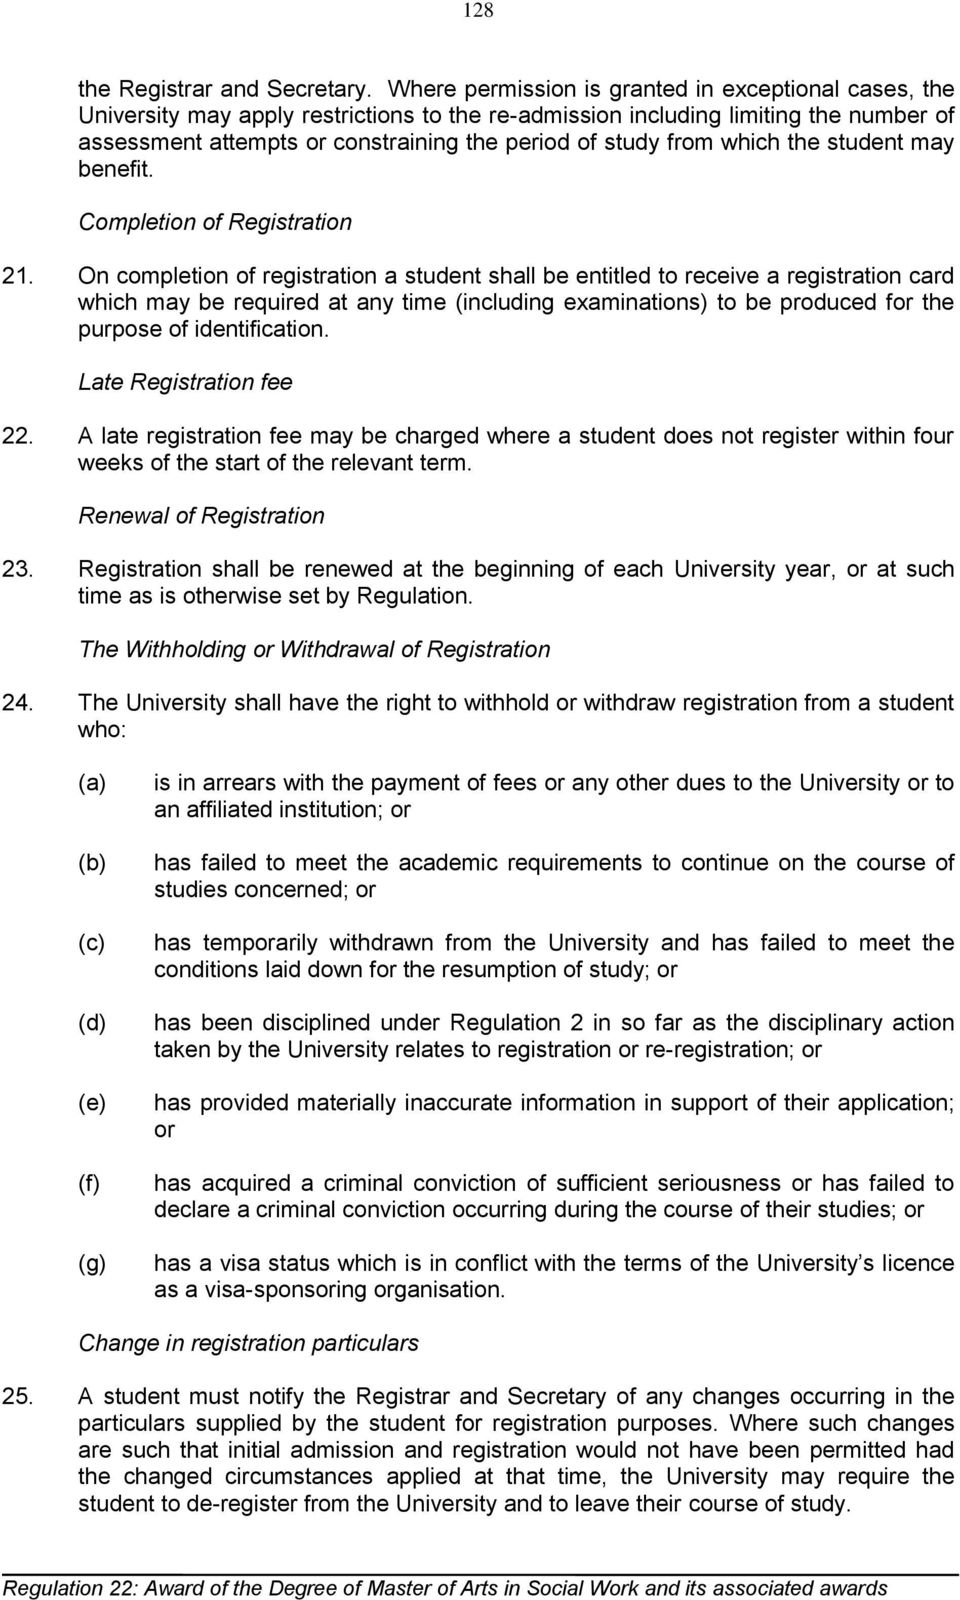 from which the student may benefit. Completion of Registration 21.